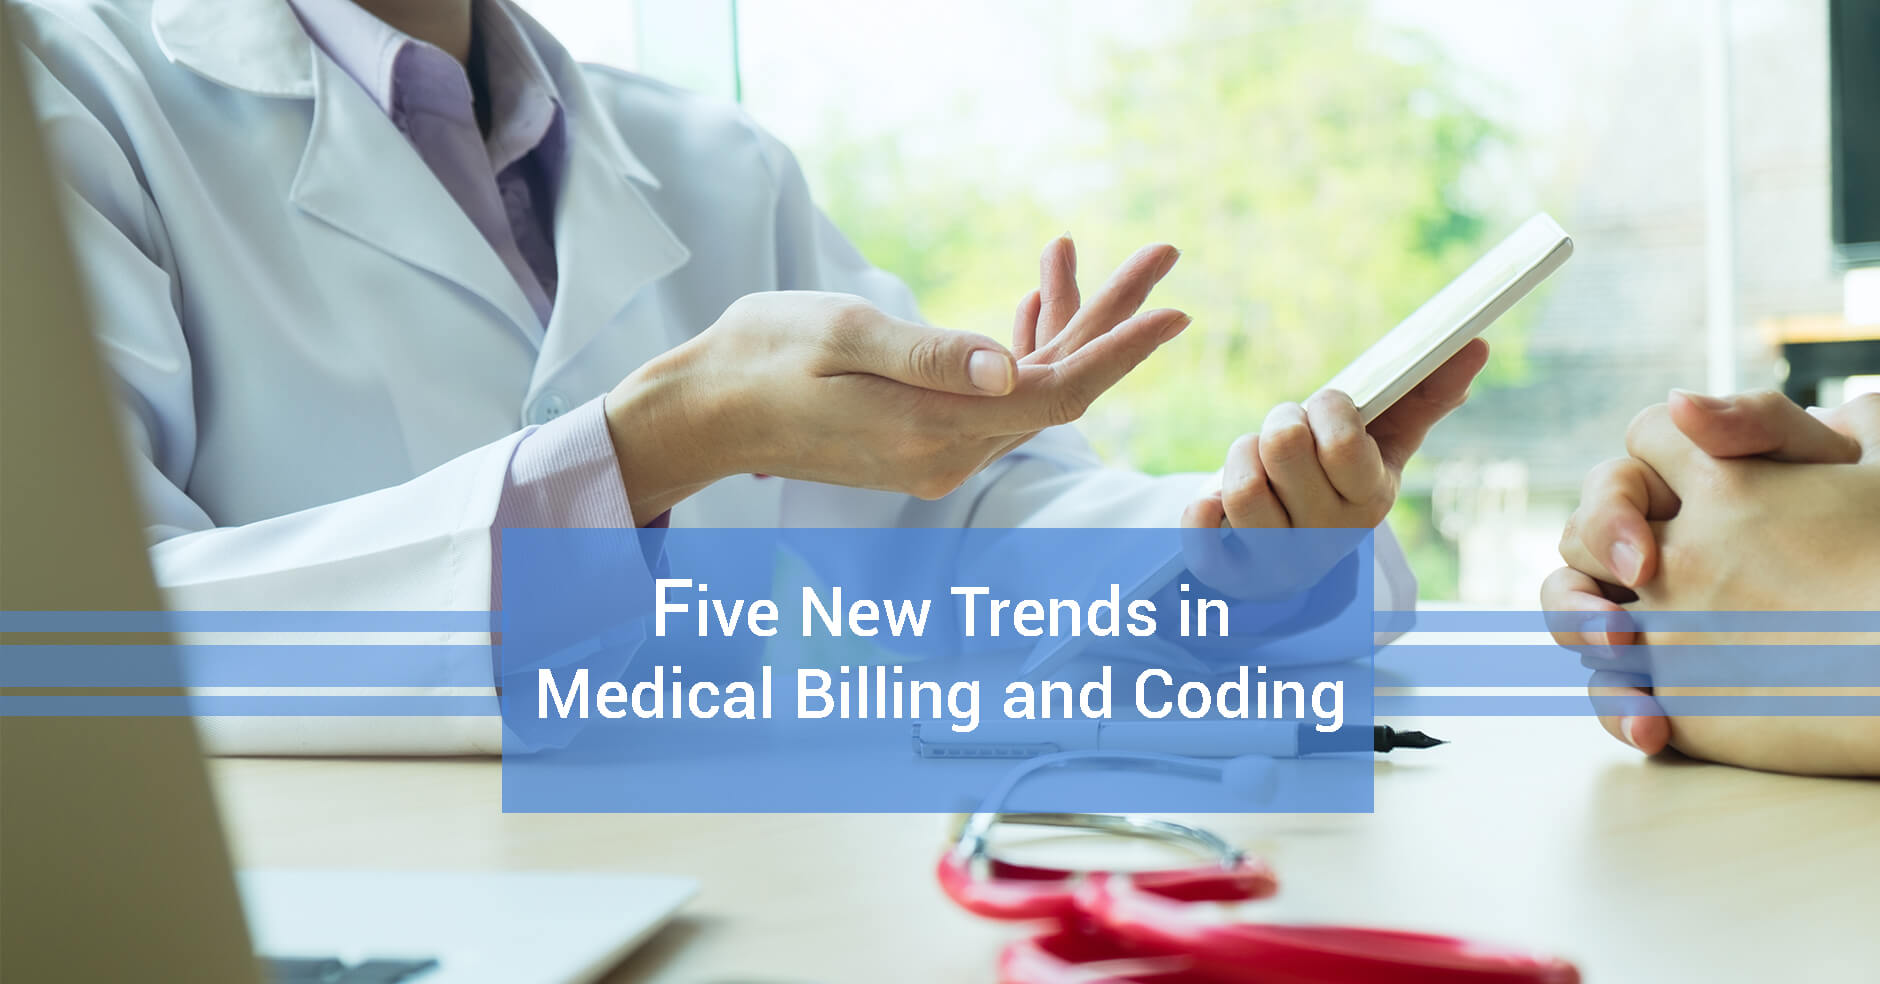 Five New Trends in Medical Billing and Coding